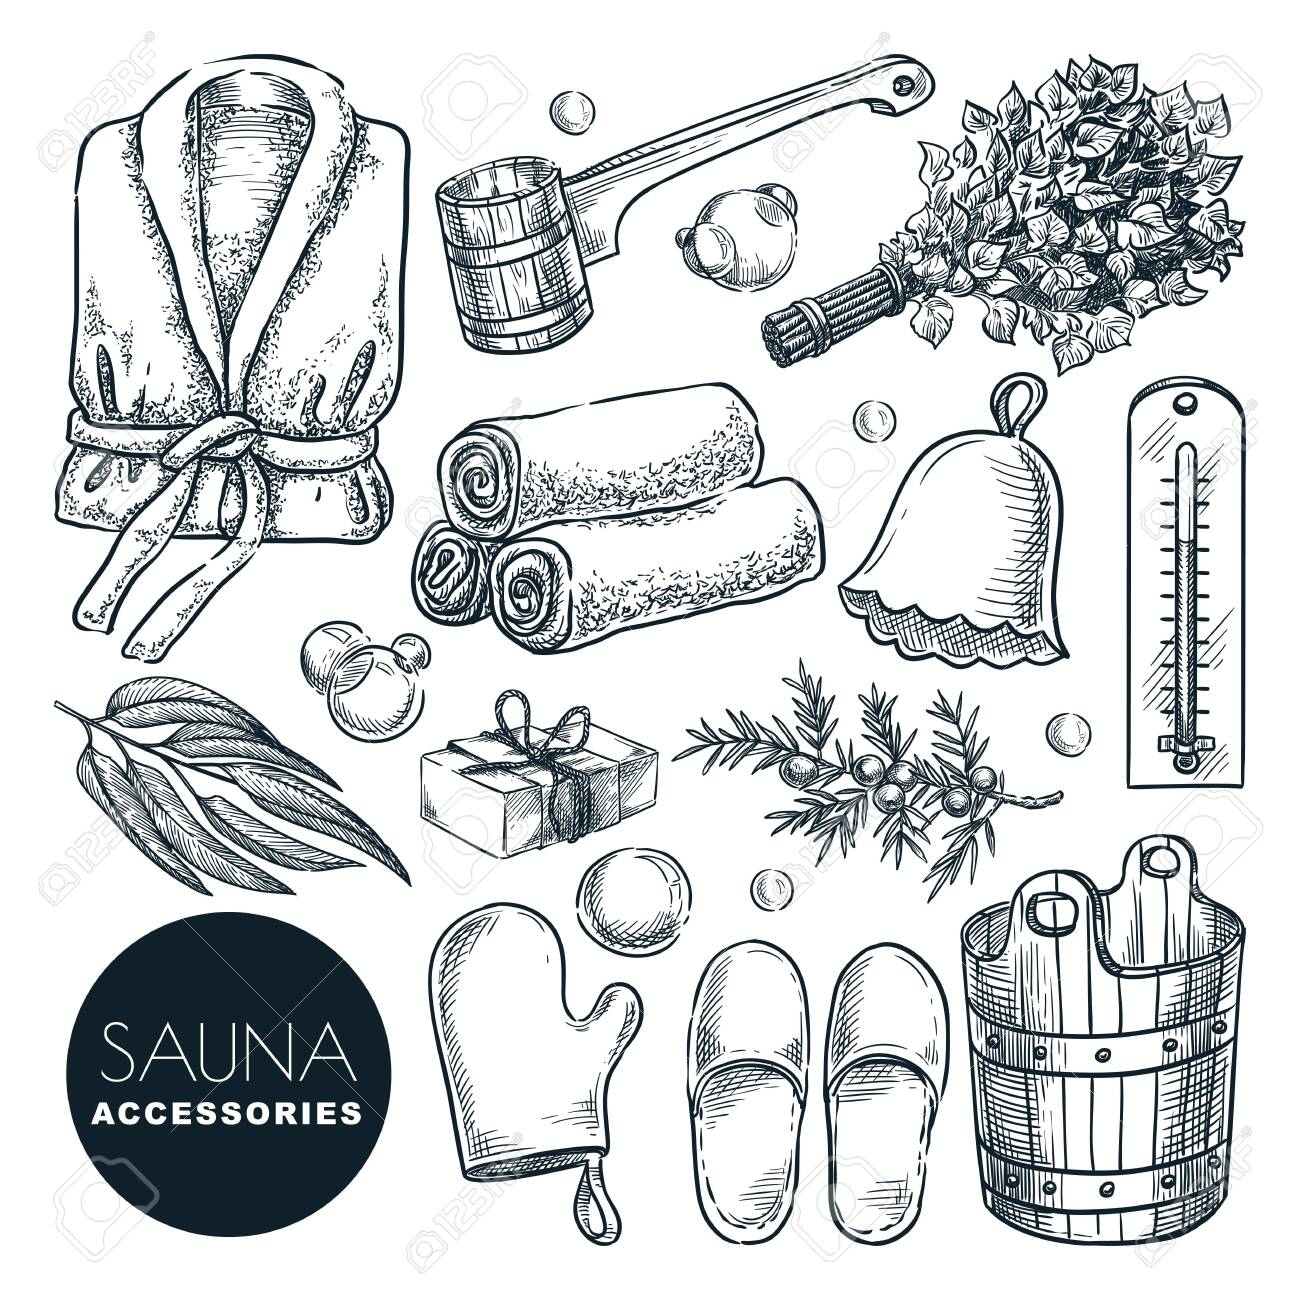 Sauna and bathhouse accessories and equipment set. Vector hand drawn sketch illustration. Bath and spa isolated design elements. Wooden bucket, birch broom, ladle and bathrobe doodle icons. - 142821477